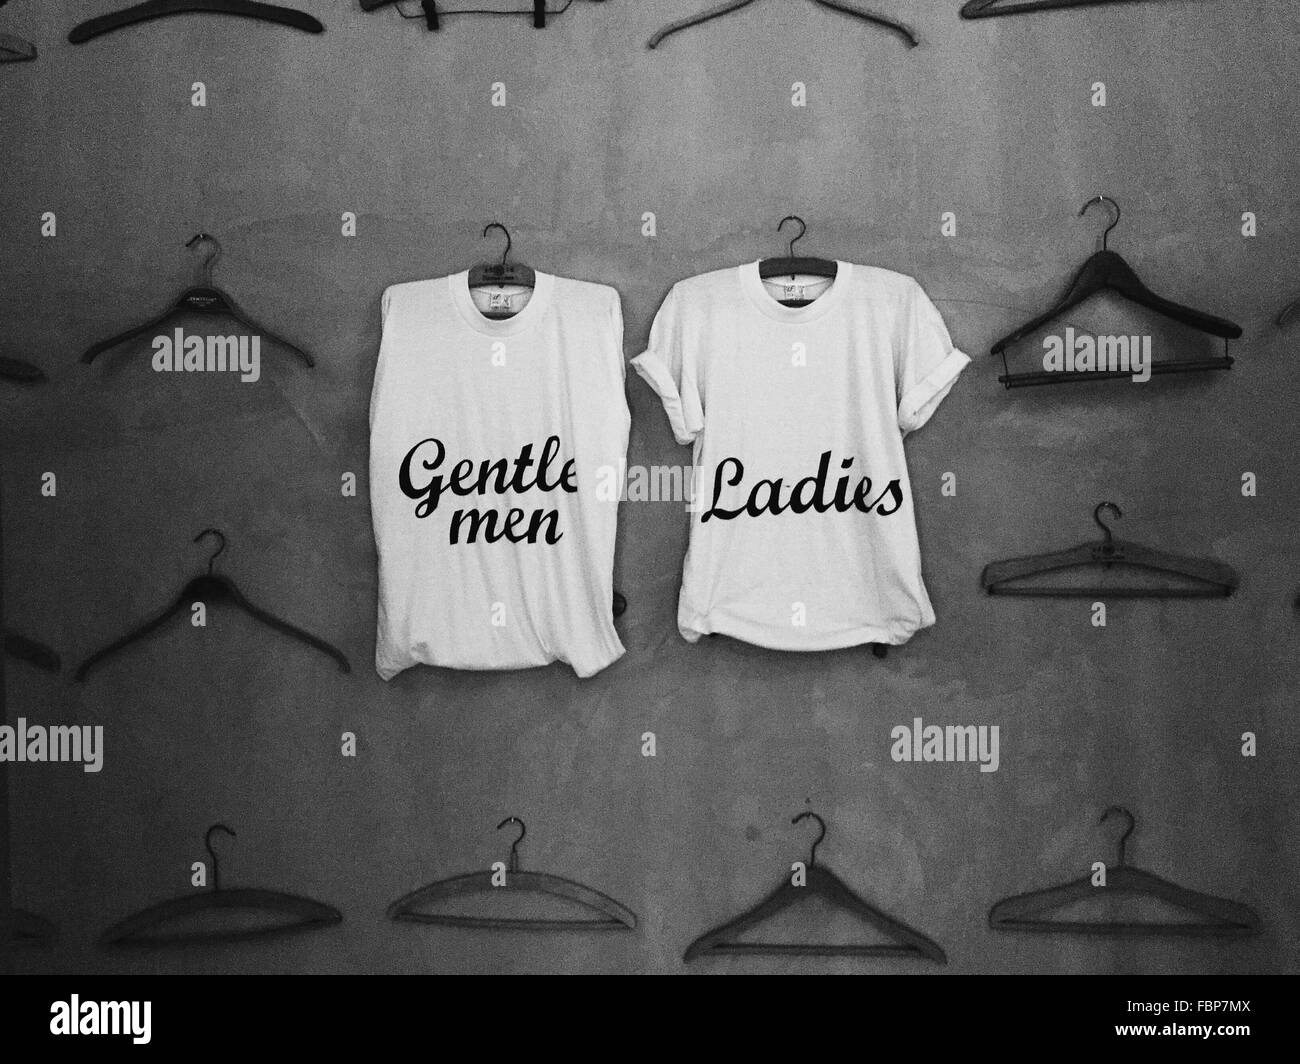 Sleeveless Short And T-Shirt With 'Gentlemen' And 'Ladies' Inscription Respectively - Stock Image